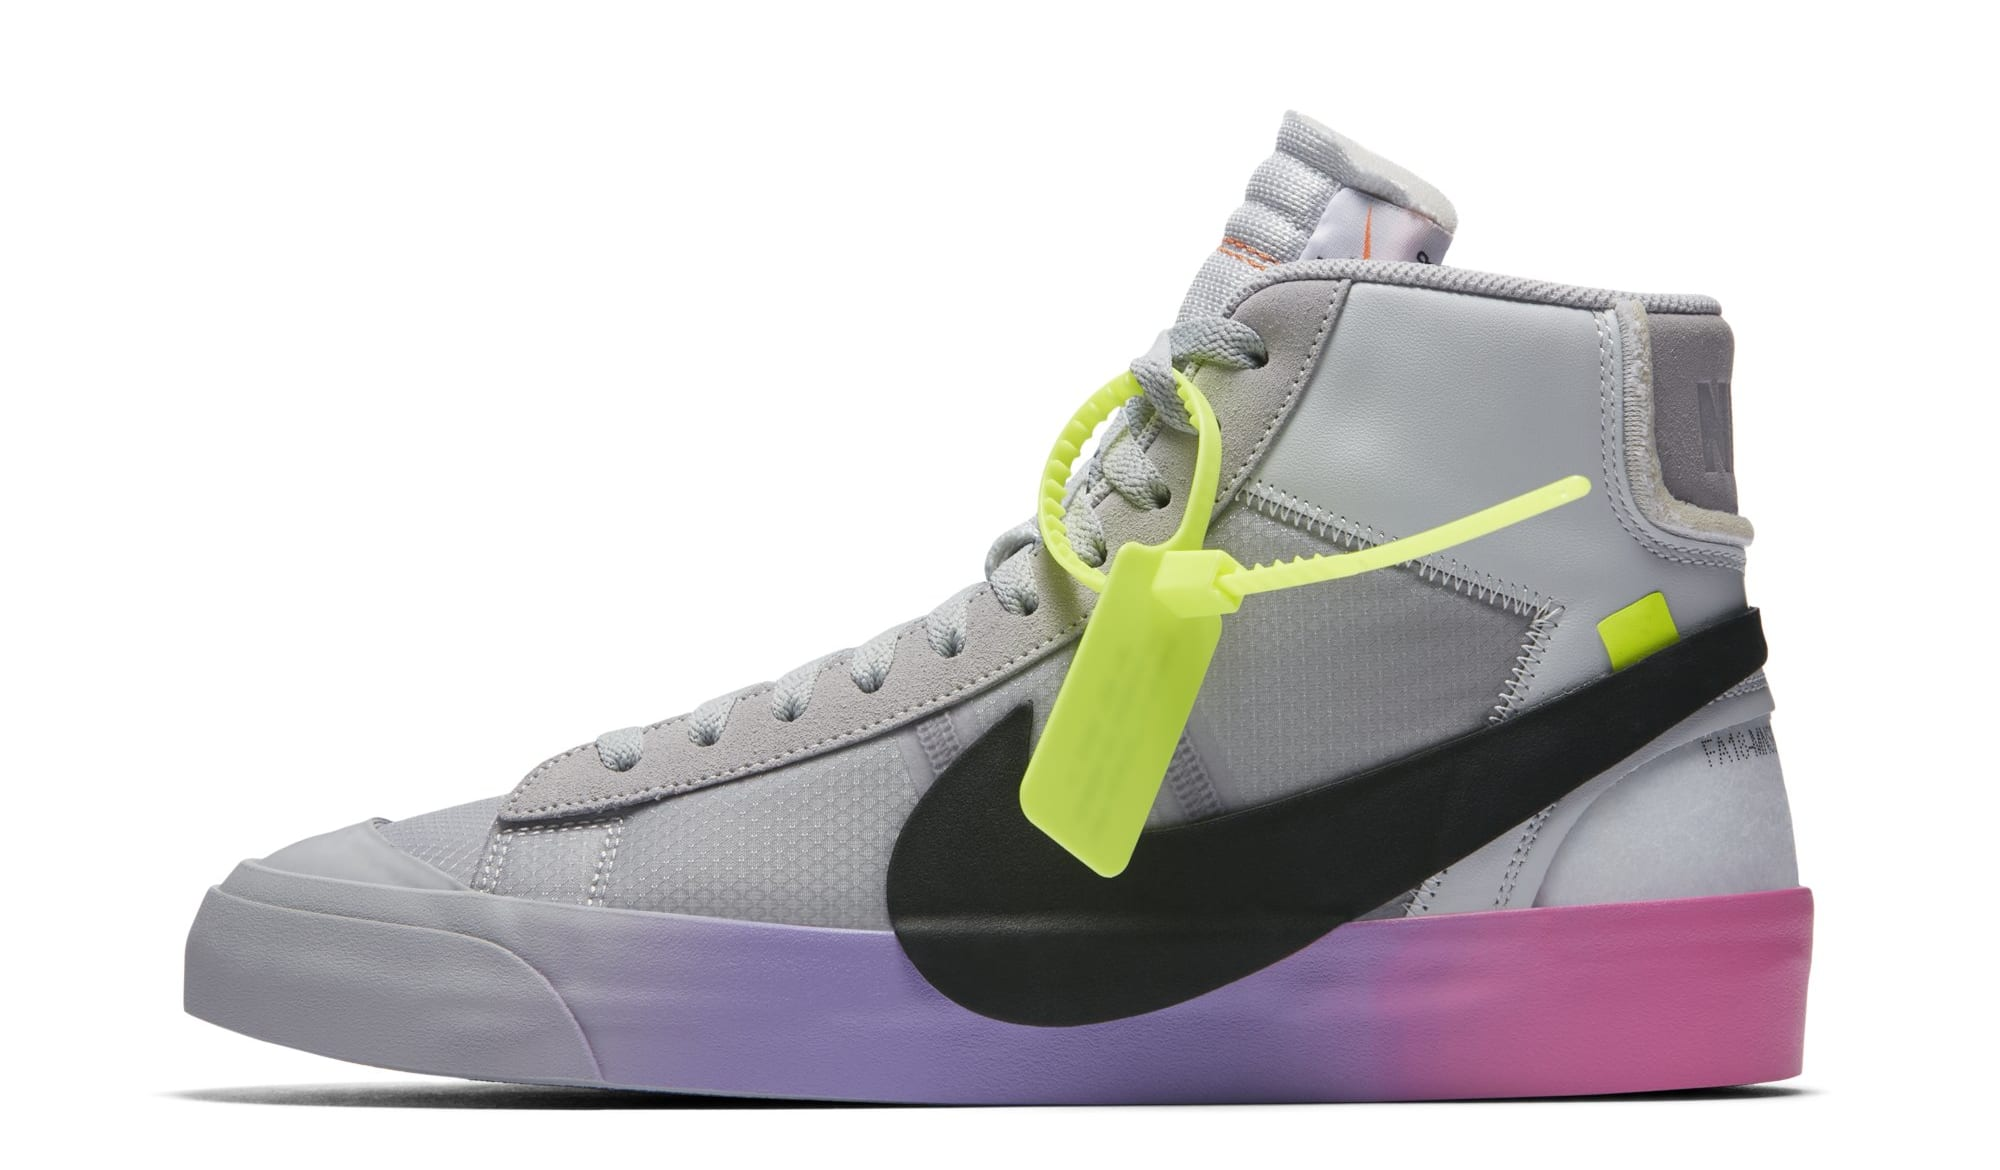 Serena Williams x Off-White x Nike Blazer Mid 'Queen' AA3832-001 (Lateral)